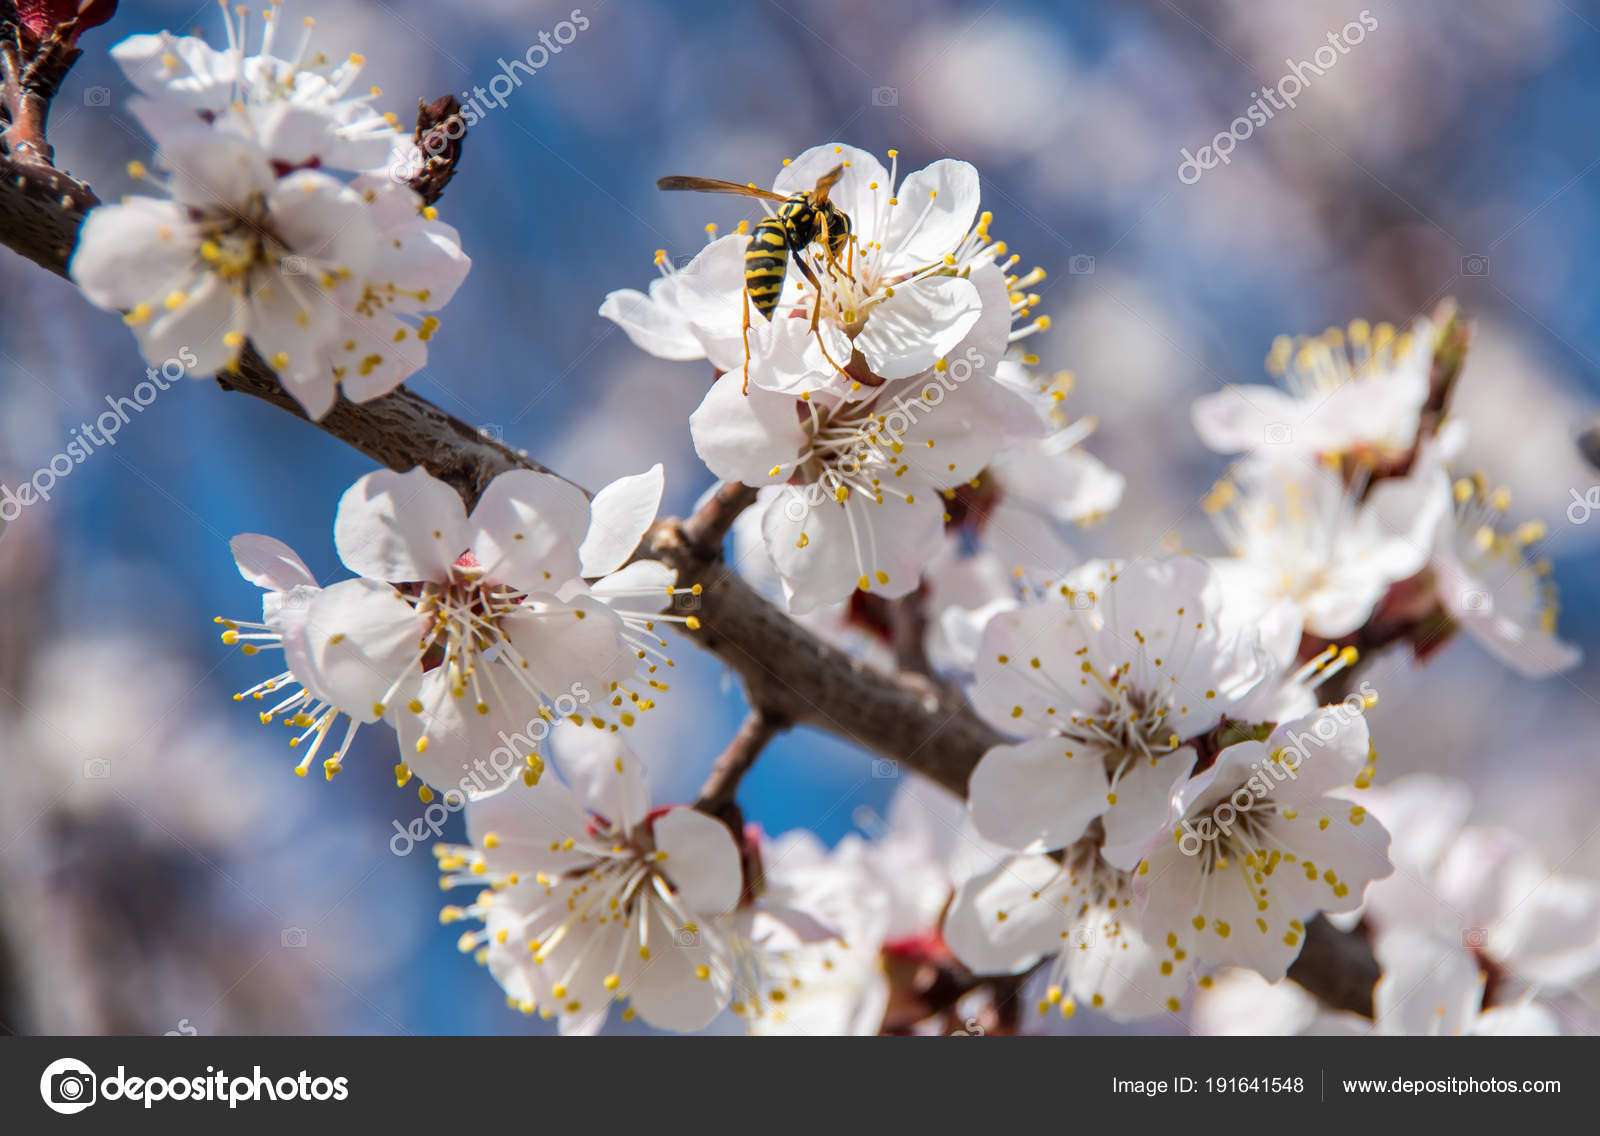 Flowering Trees Spring Background Sky Greenery Bees Pollinate Them